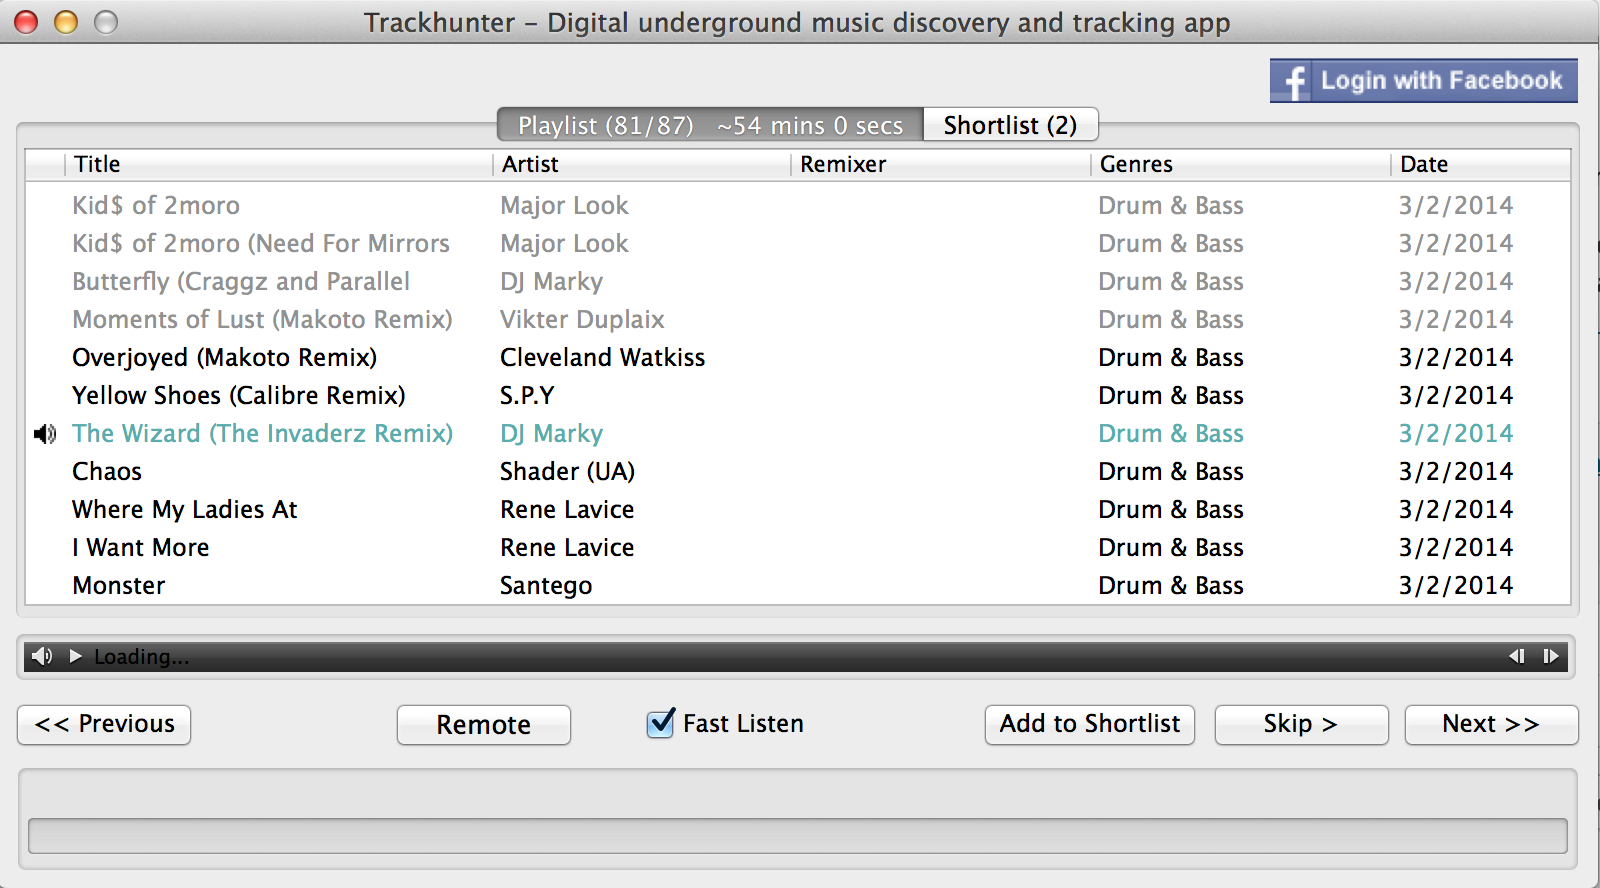 Step 4. Audition songs either manually by skipping through them or automatically by ticking the Fast Listen box.